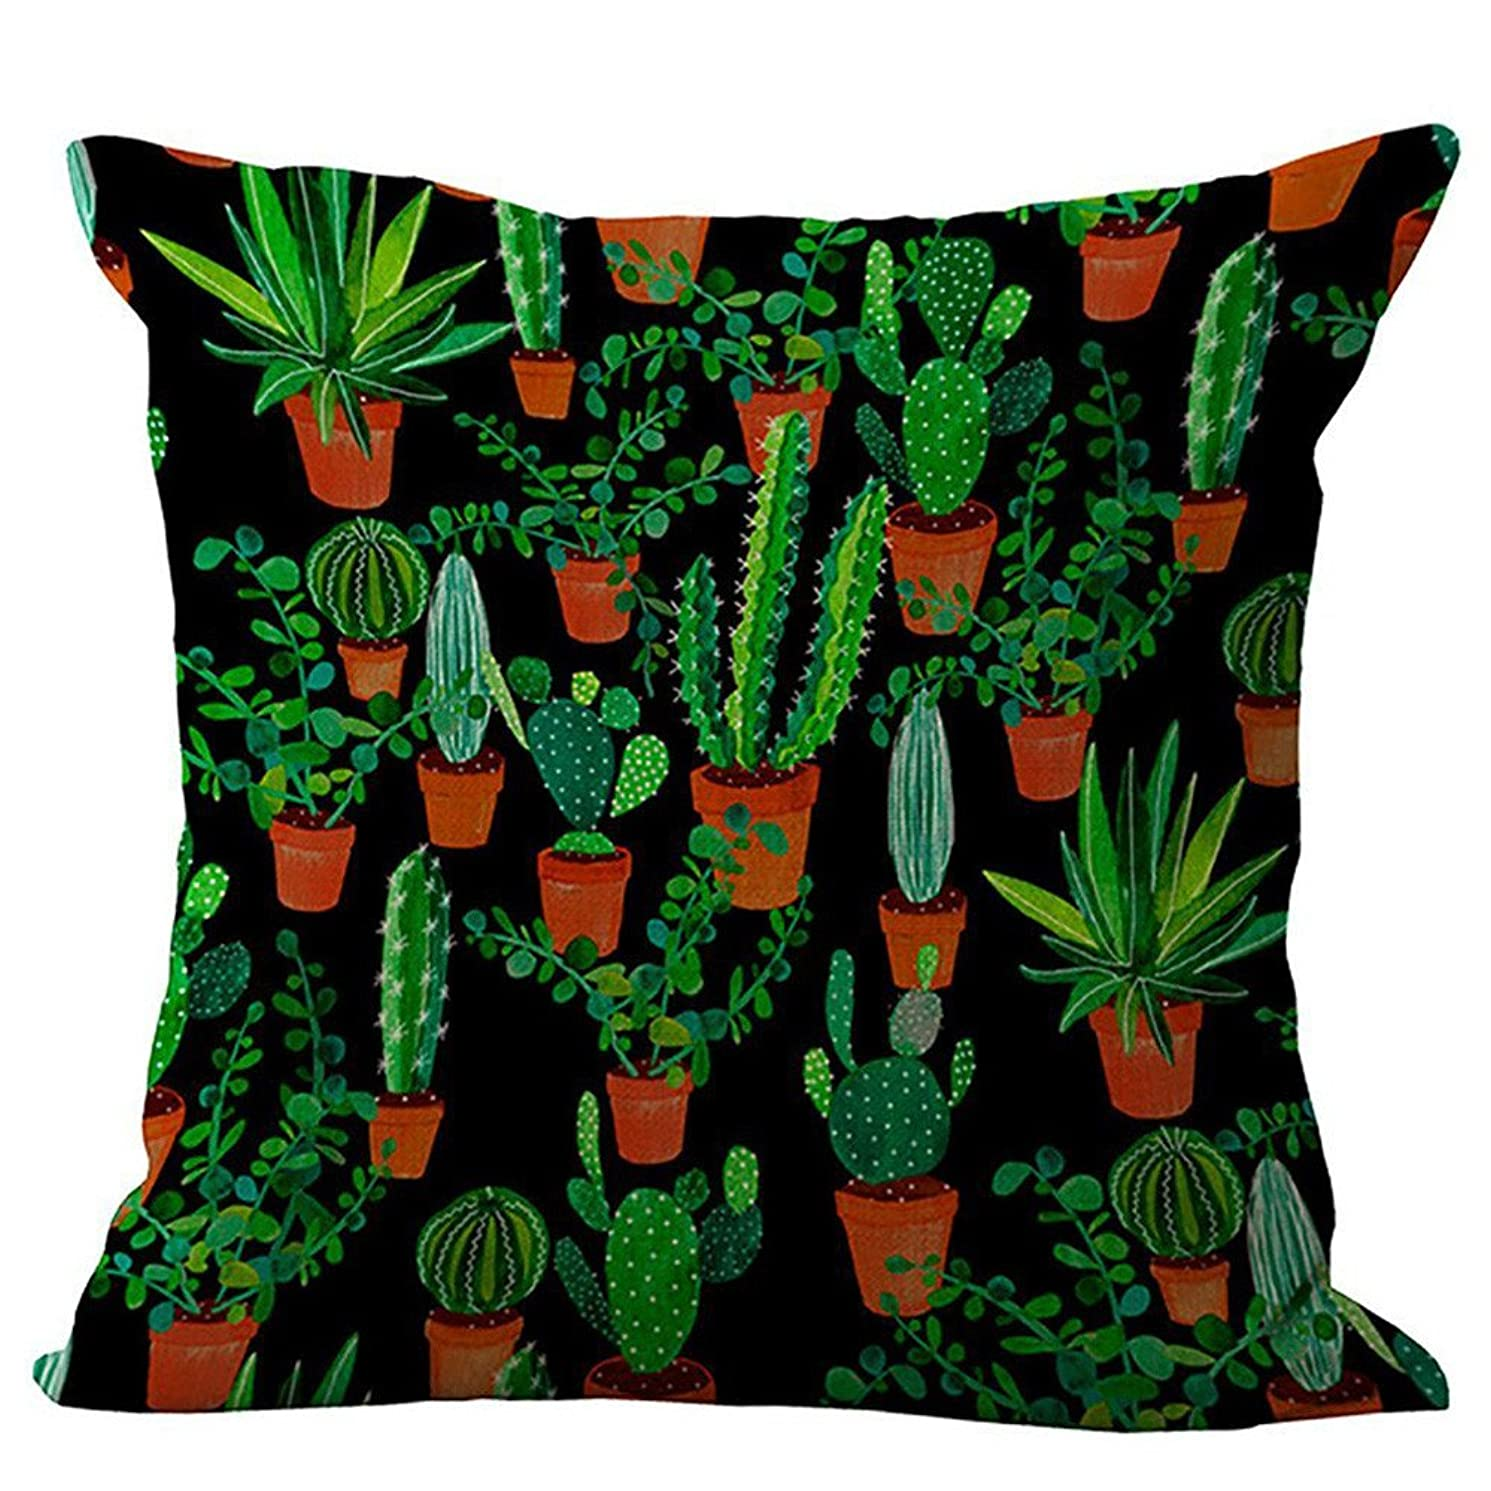 Print Series Throw Pillow Cover Decorative Outdoor Cushion Cover Pillow Case for Car Sofa Bed Couch 18 x 18 Inch